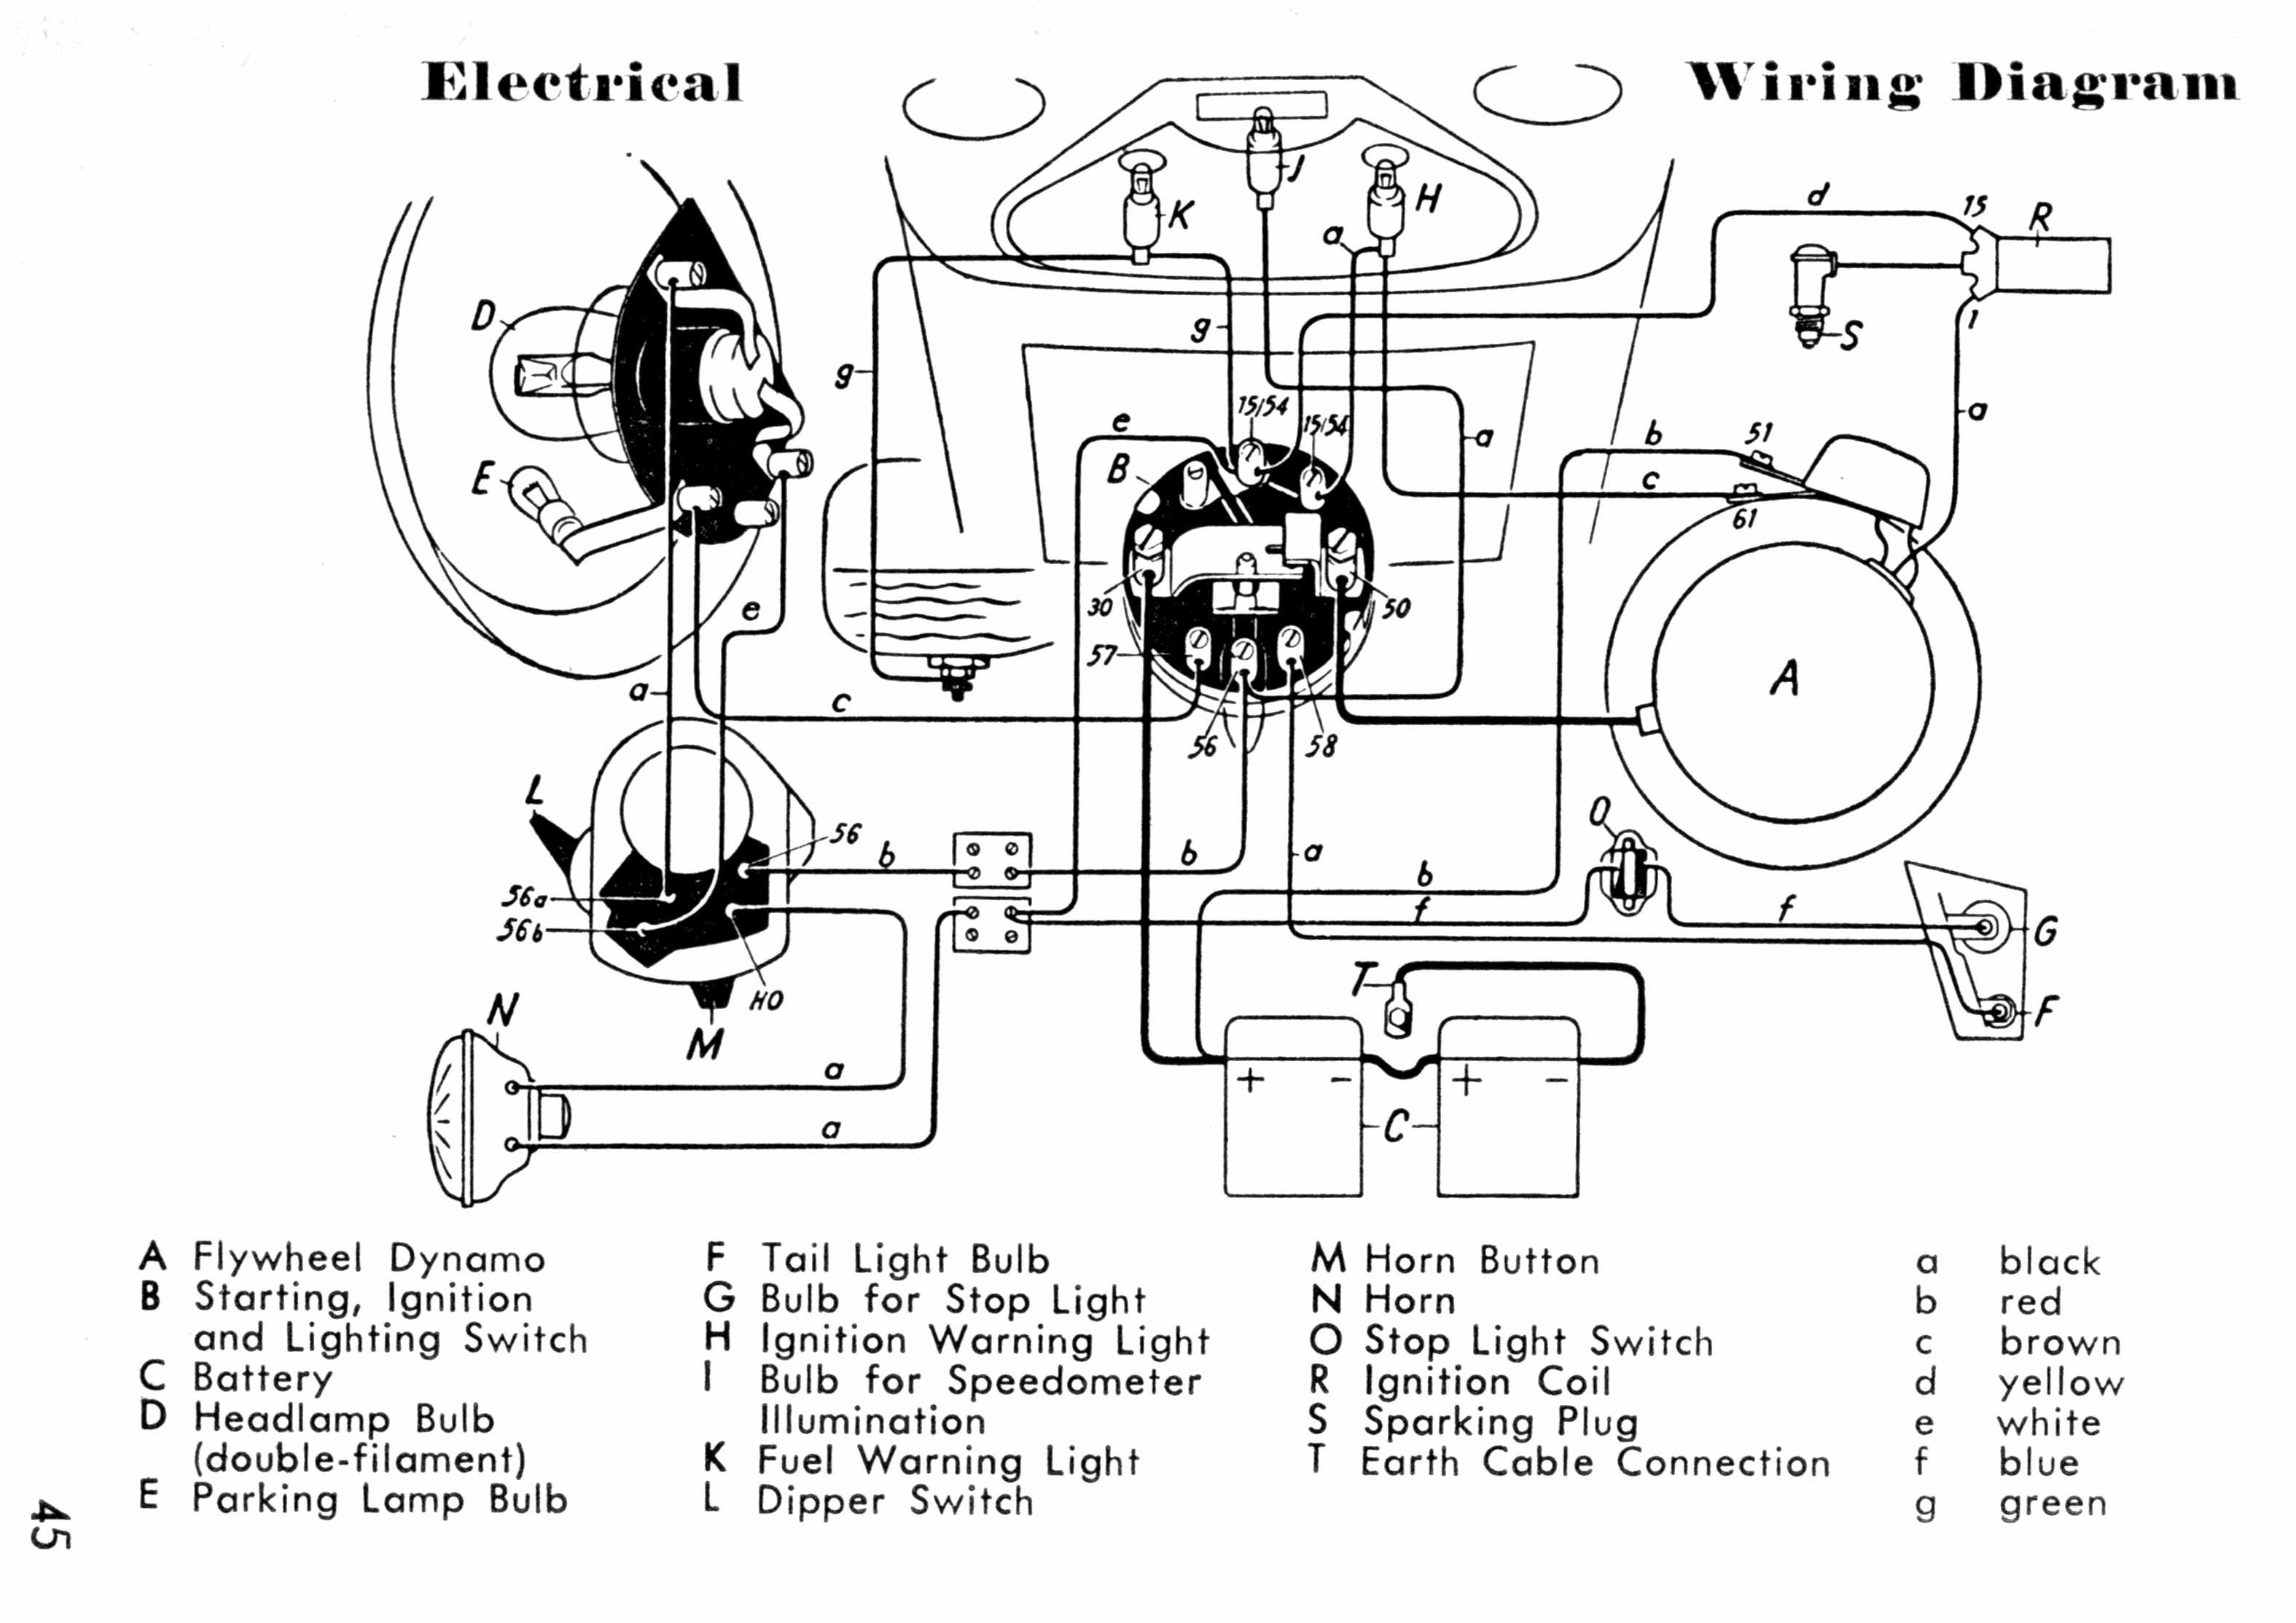 3ee73df4e7463c417fc349eccfcaade4 schematic electric scooter wiring diagram closet pinterest honda ruckus tail light wiring diagram at alyssarenee.co